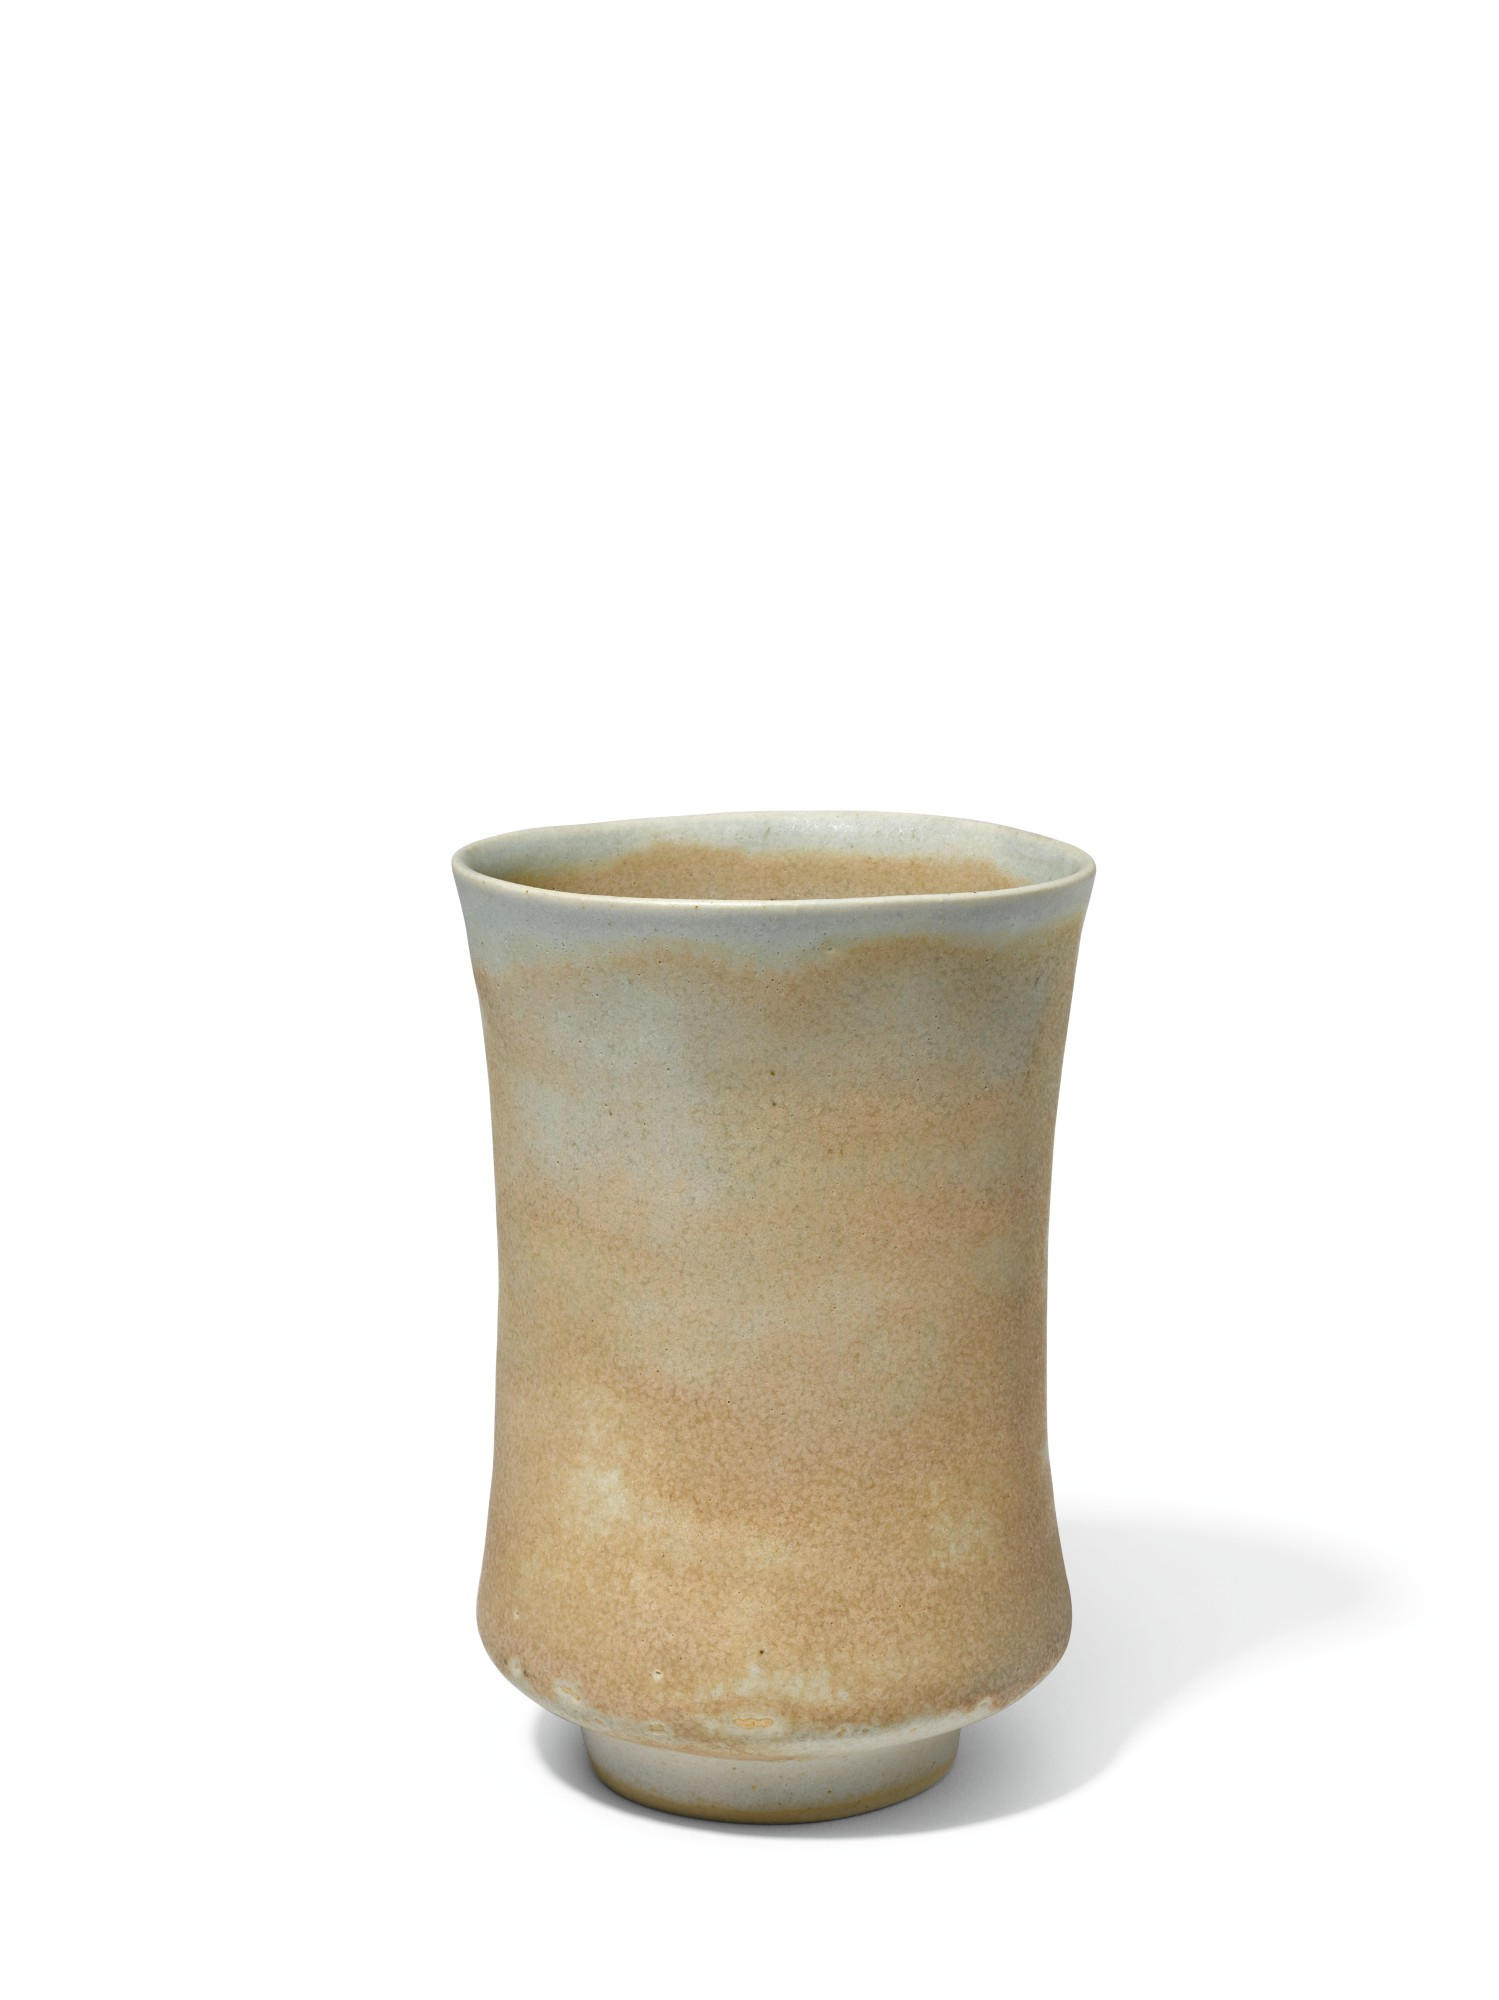 DAME LUCIE RIE | SQUEEZED VASE